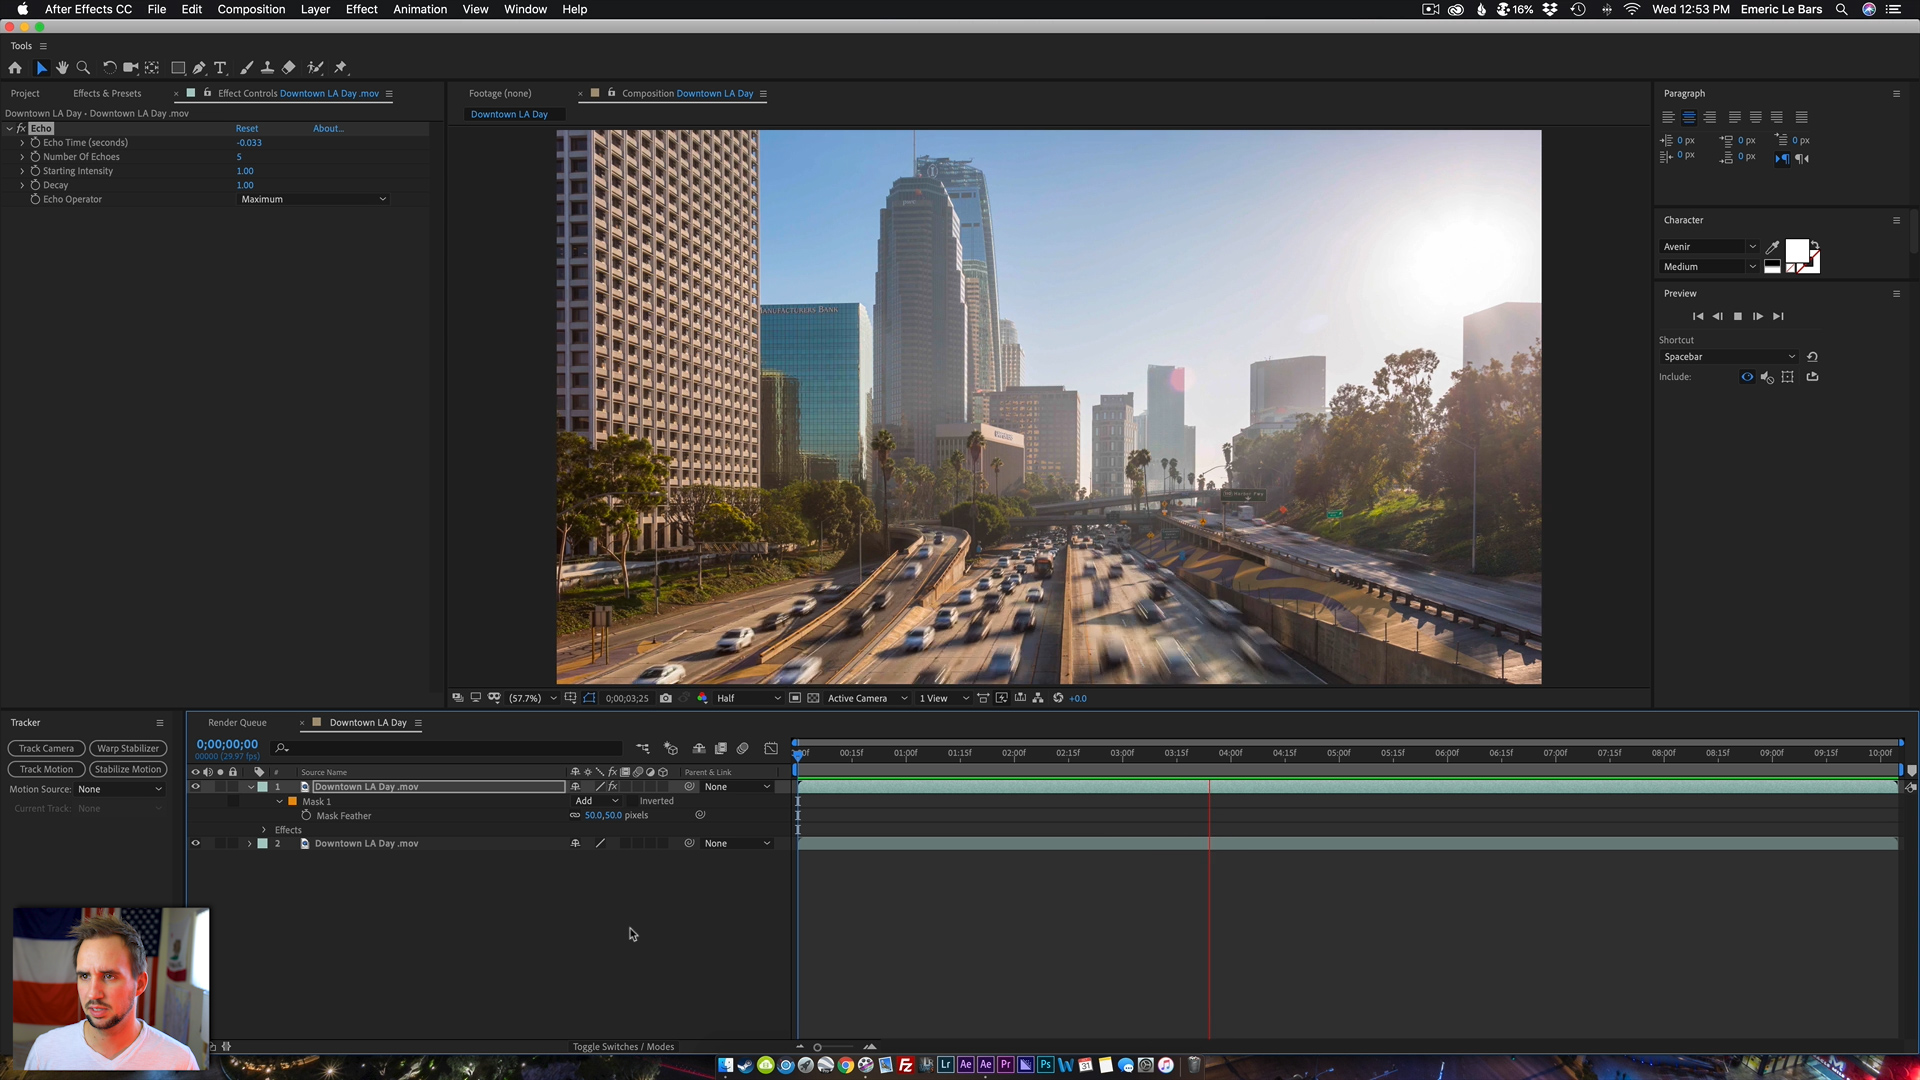 CLEANING DAY TIMELAPSE AFTER EFFECTS Timelapse Masterclass 2019